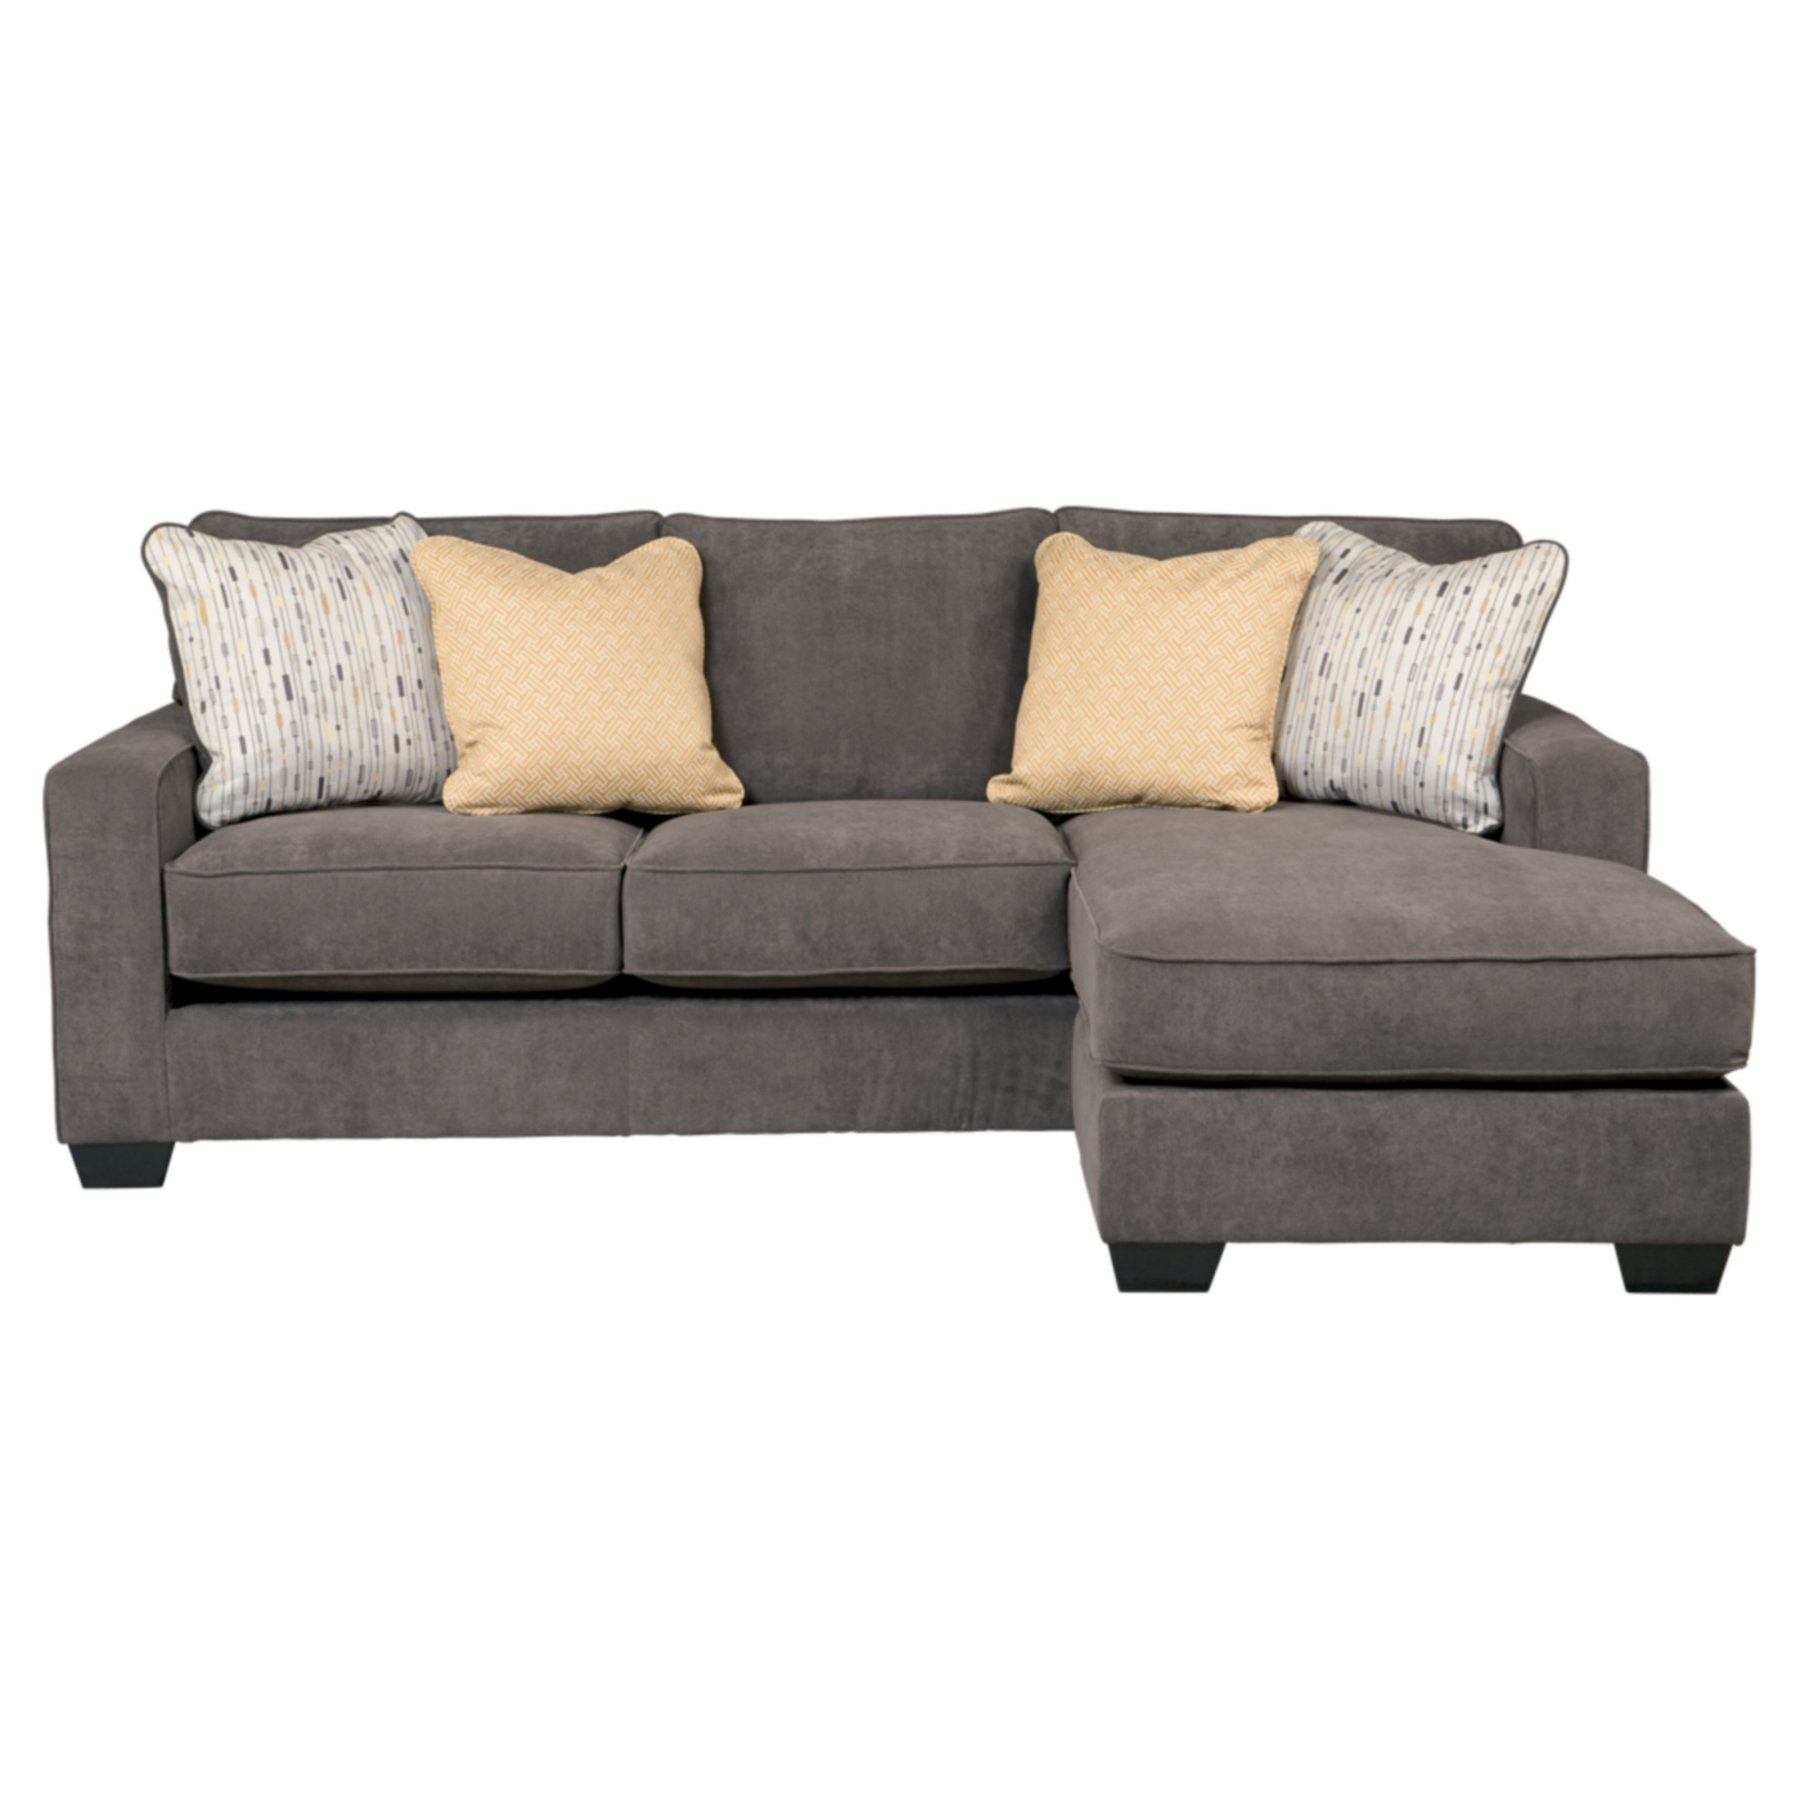 Signature Design By Ashley Hodan Sofa Chaise  7970018